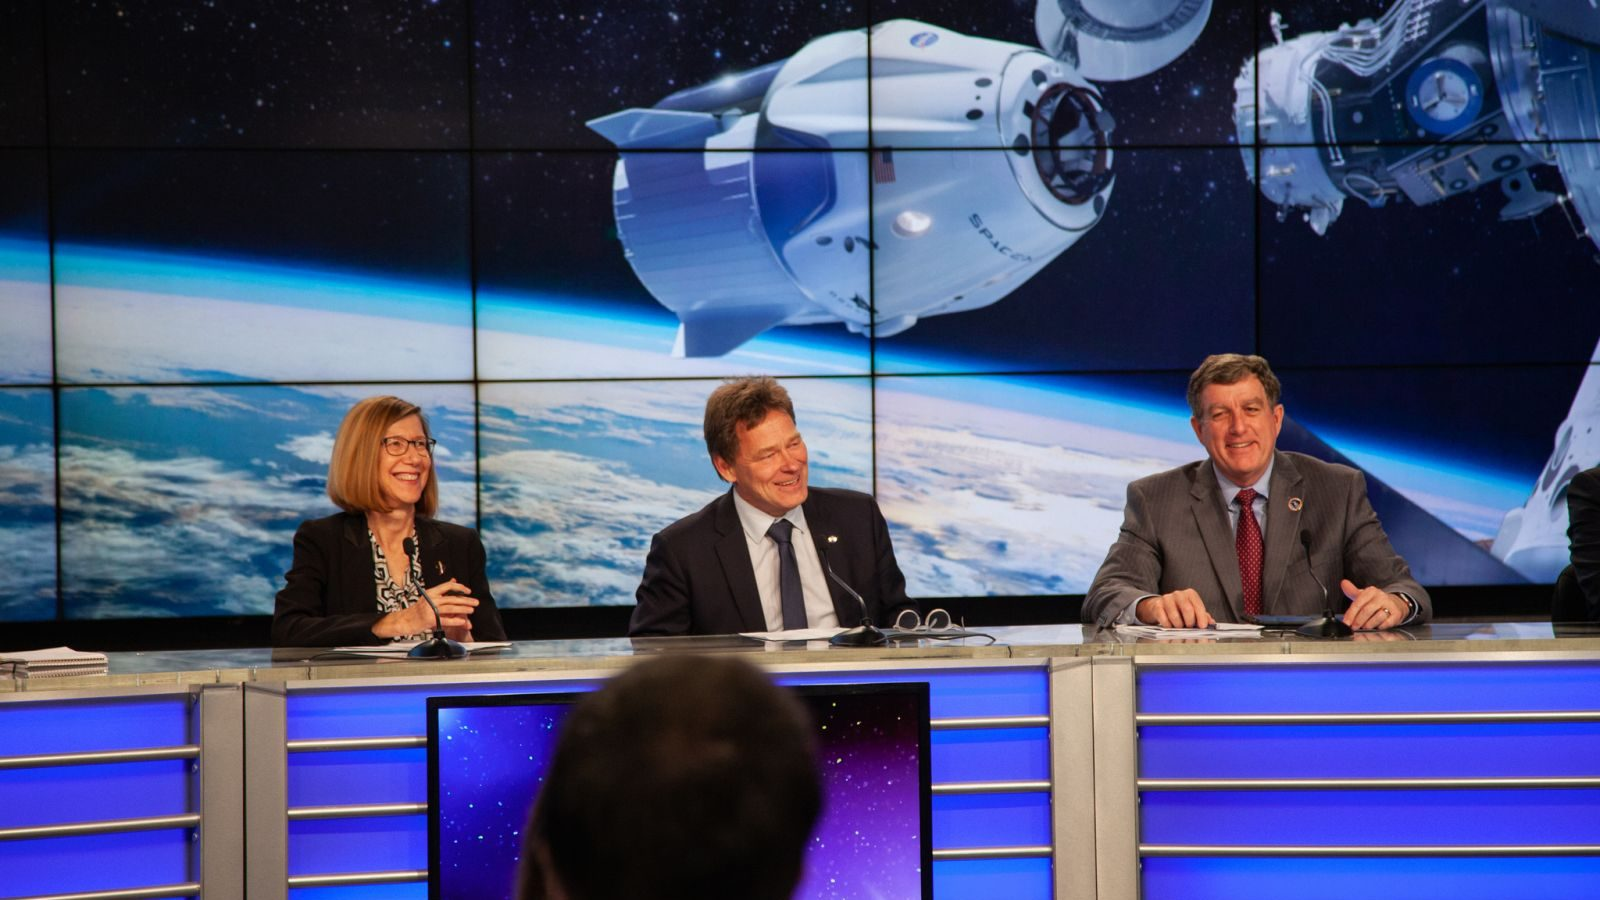 SpaceX vice president for mission assurance, Hans Koenigsmann (center), during a pre-flight press conference before the Dragon Demo-1 mission in February 2019. According to a report by CNBC, he plans to retire. Credit: NASA